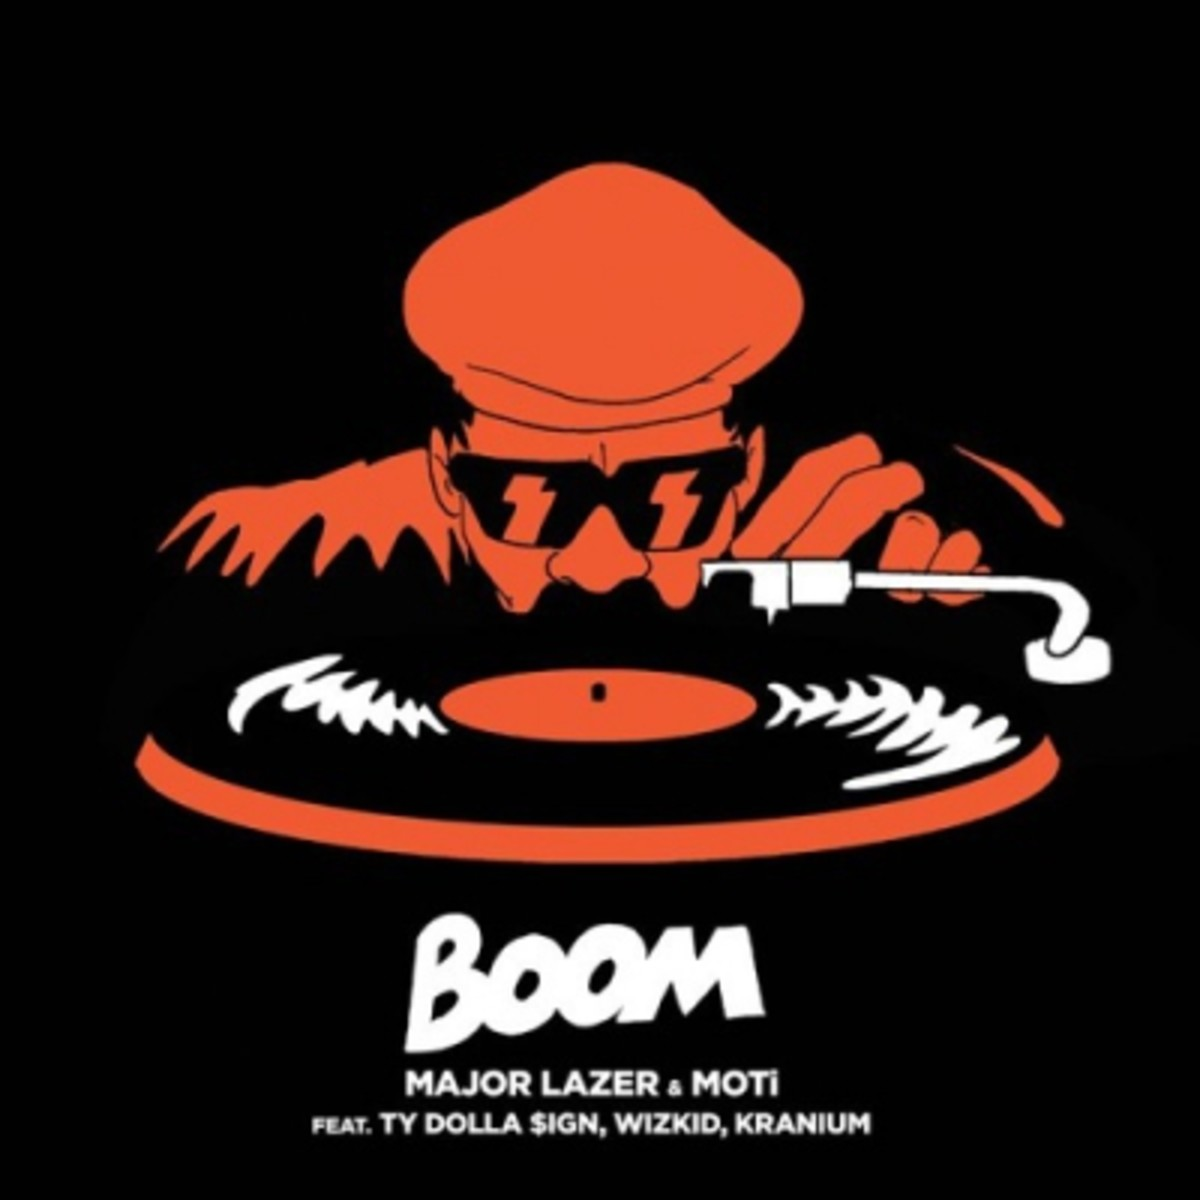 major-lazer-moti-boom.jpg